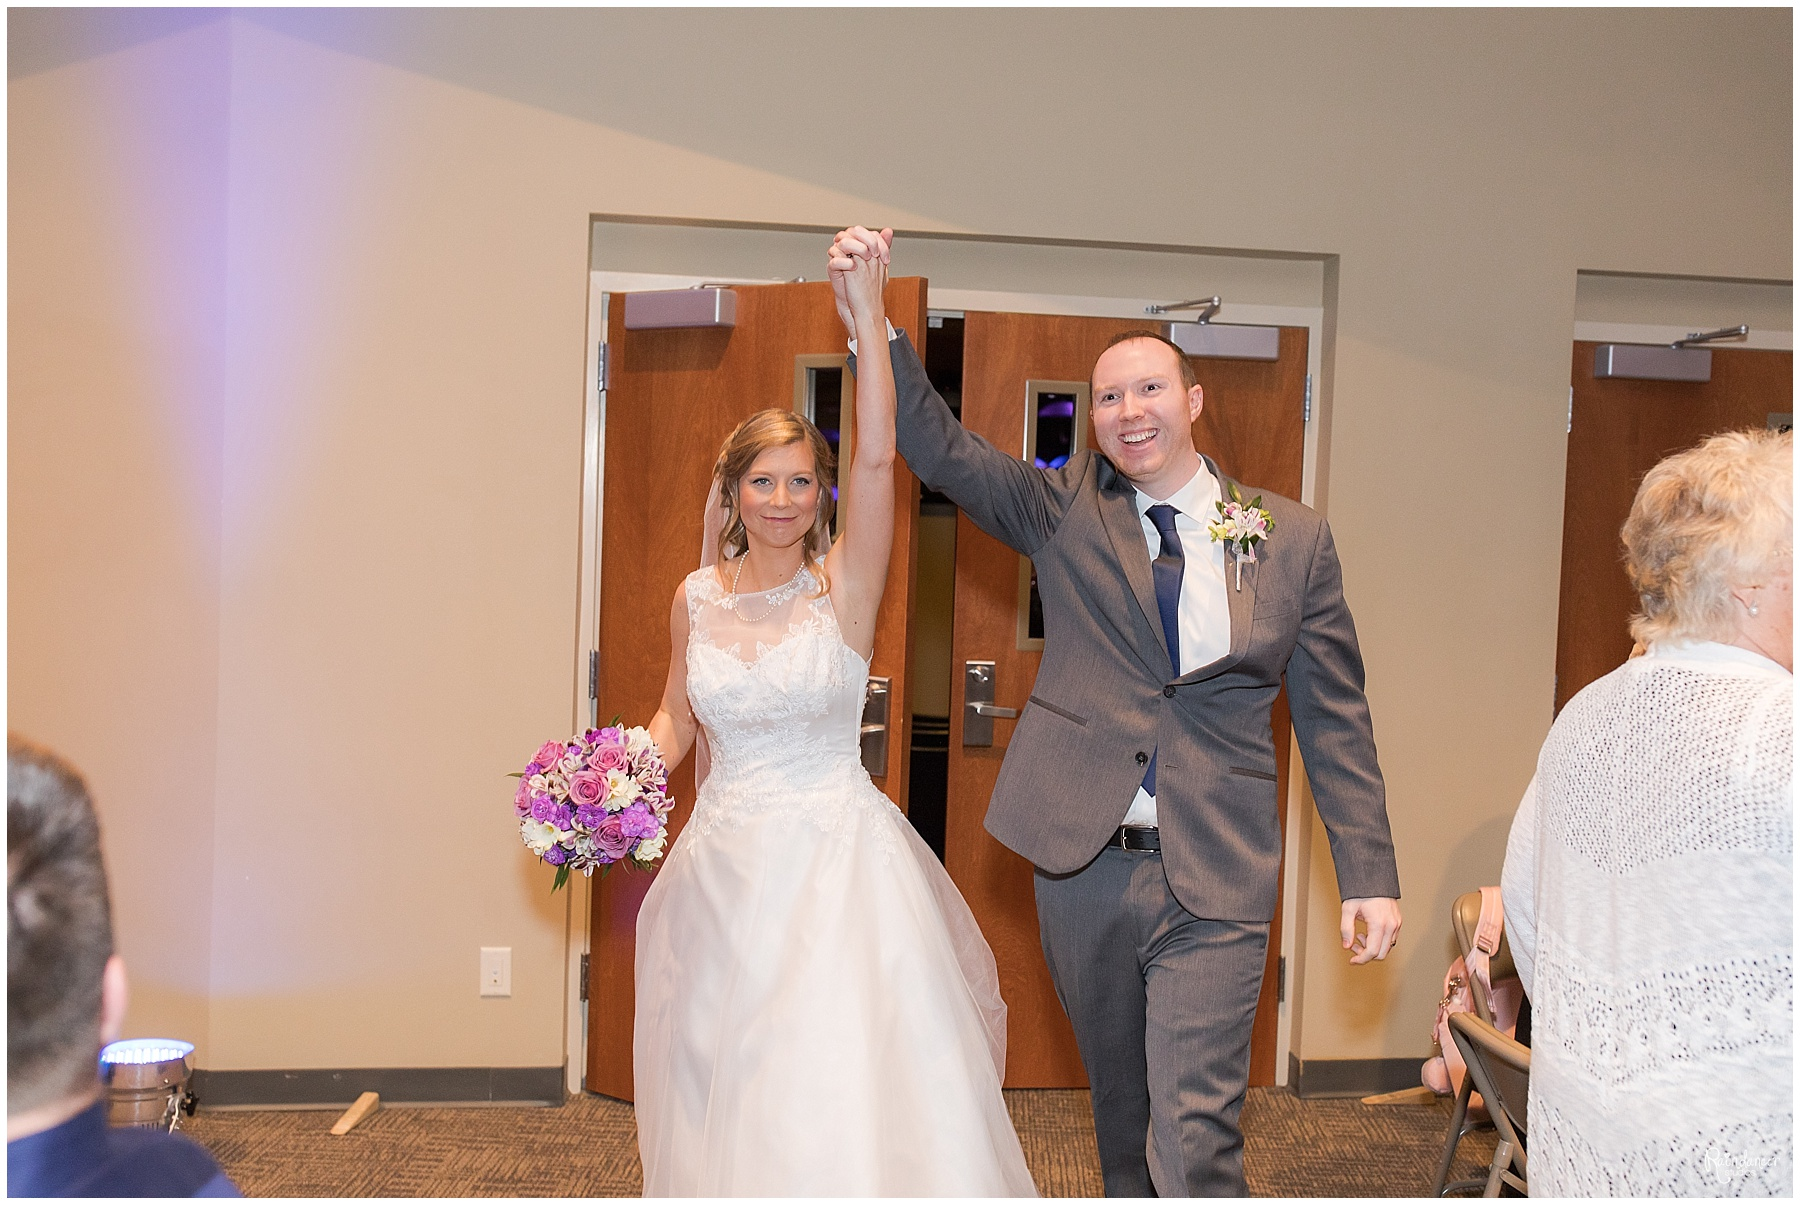 Bride and groom entering after the ceremony by Raindancer Studios Indianapolis Wedding Photographer Jill Howell